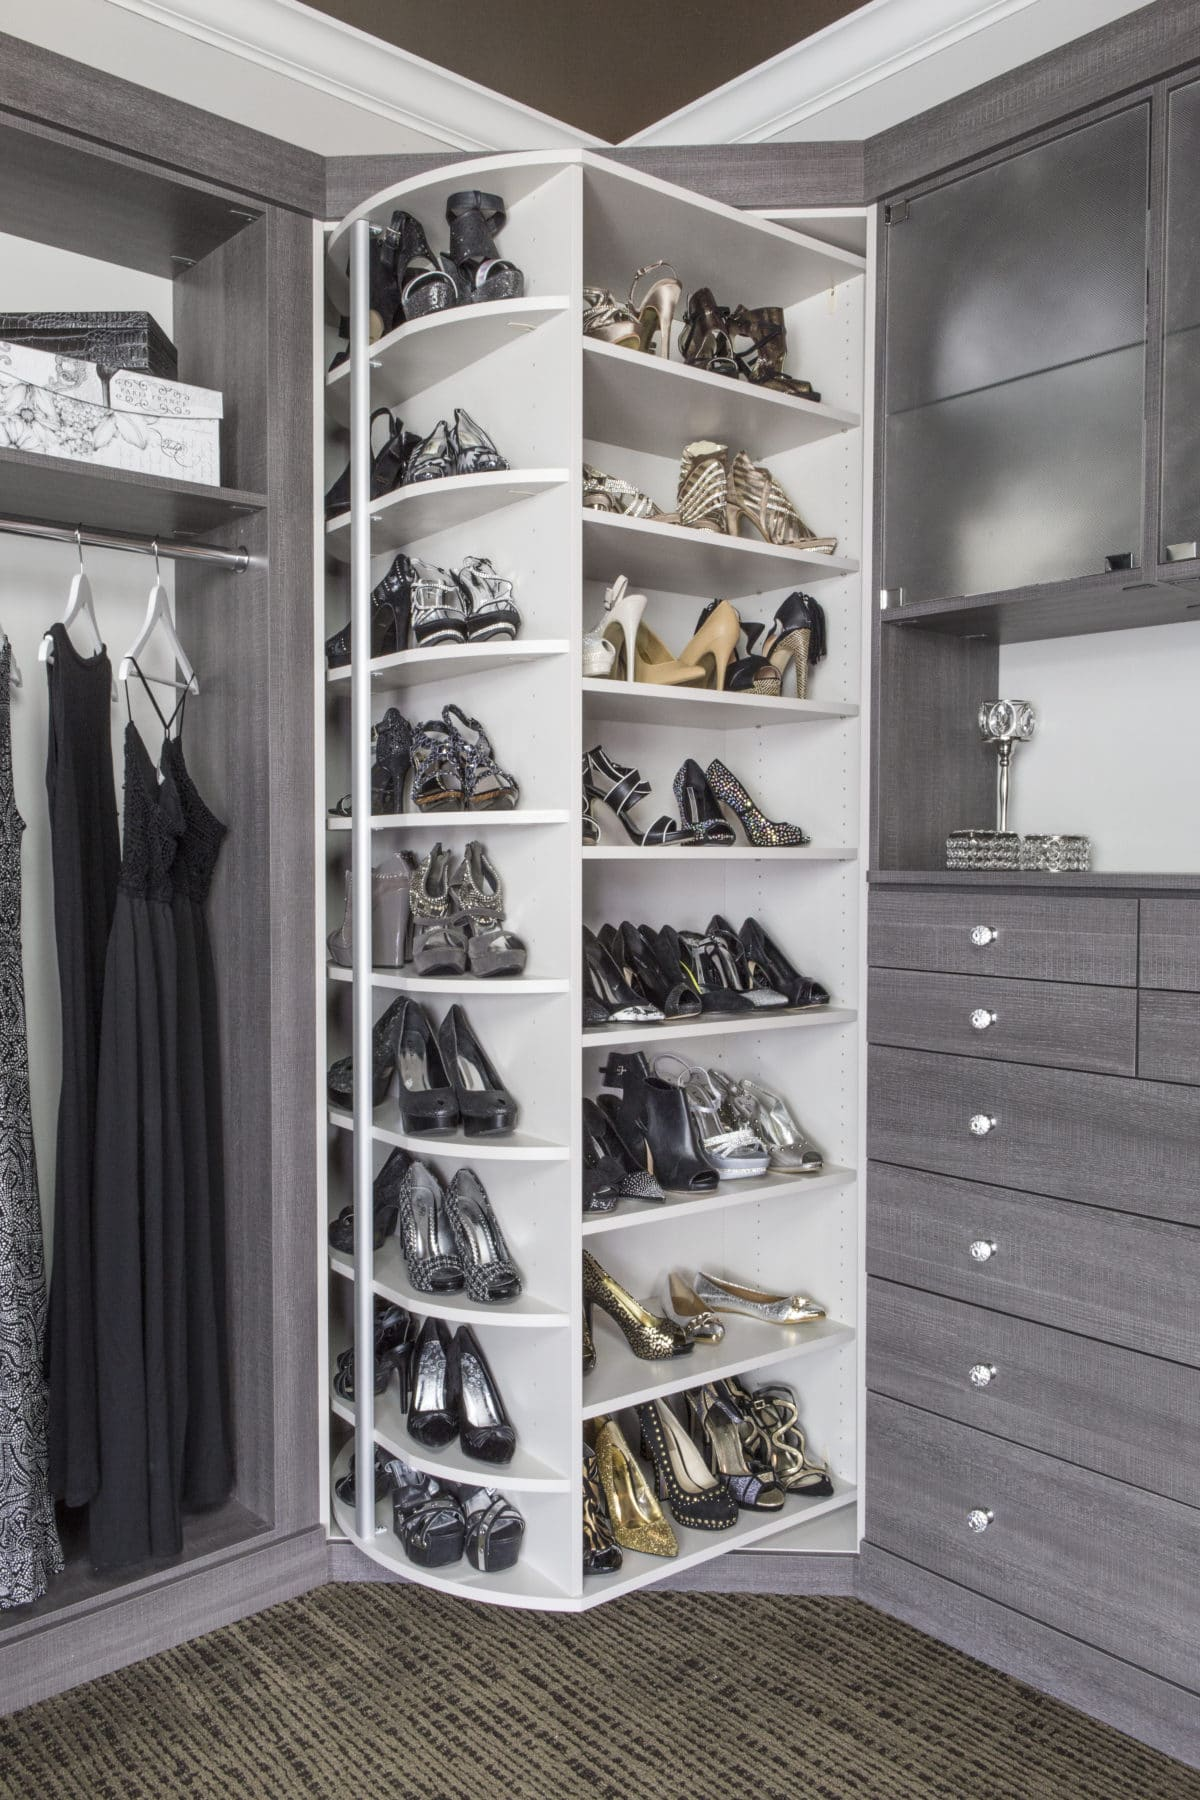 360 closet organizer phoenix az closet spinner scottsdale az closets. Black Bedroom Furniture Sets. Home Design Ideas